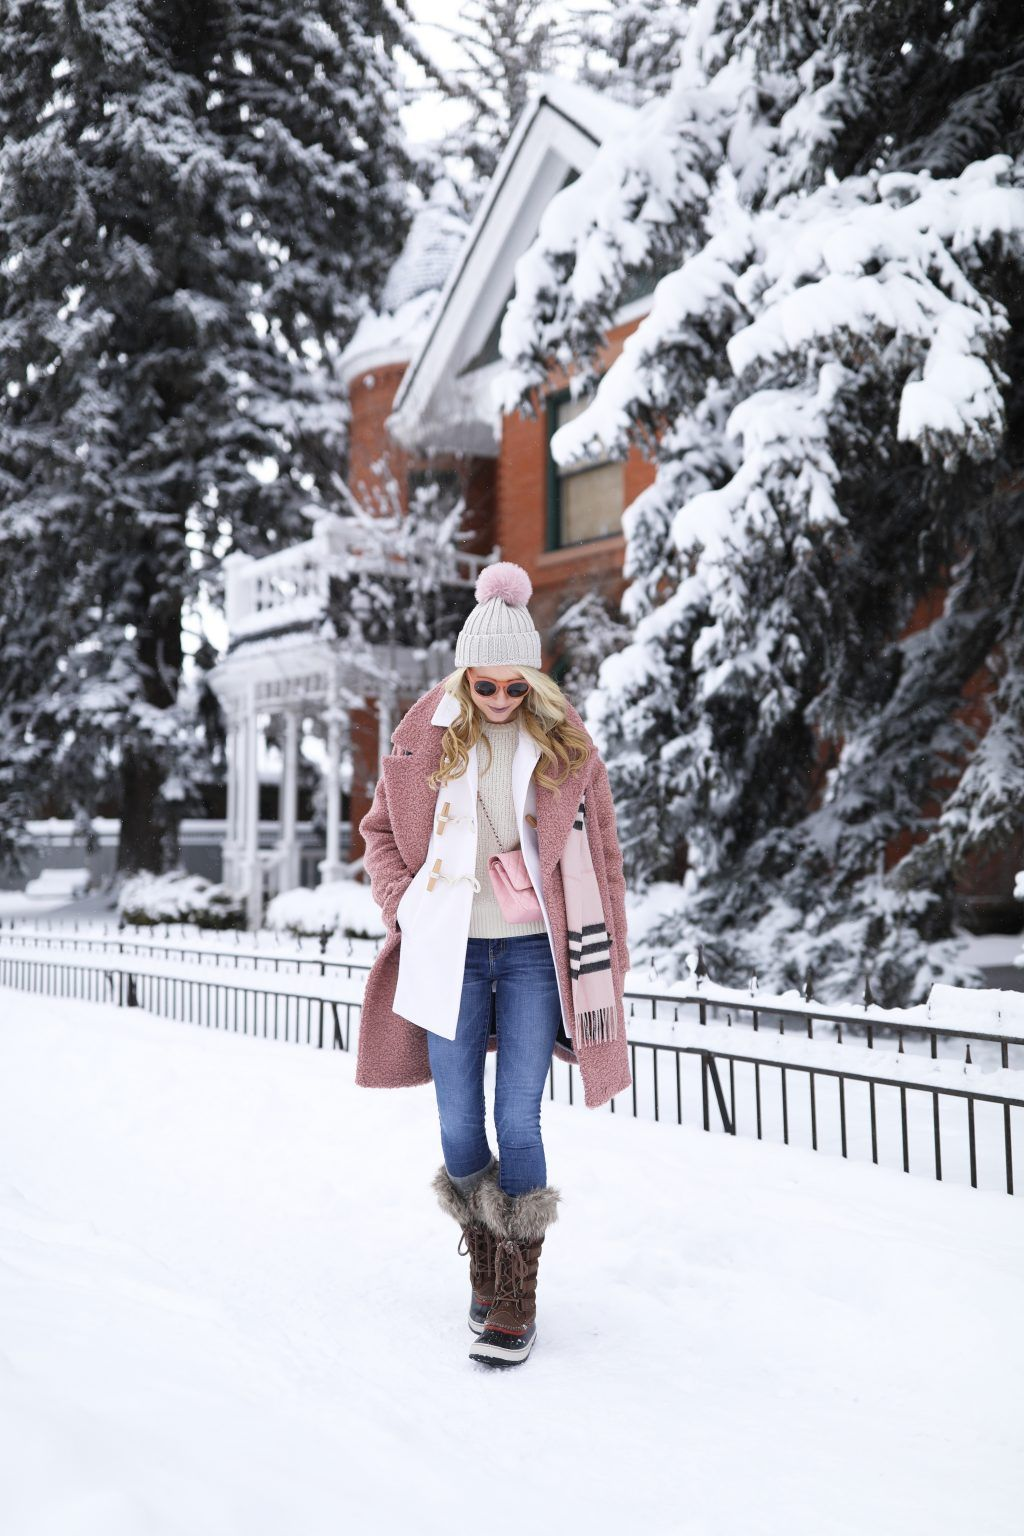 7a3c6a0871e blair-eadie-atlantic-pacific-fashion-blog-aspen-outfit-denim-layering-fur- boots-pink-coat-cream-sweater